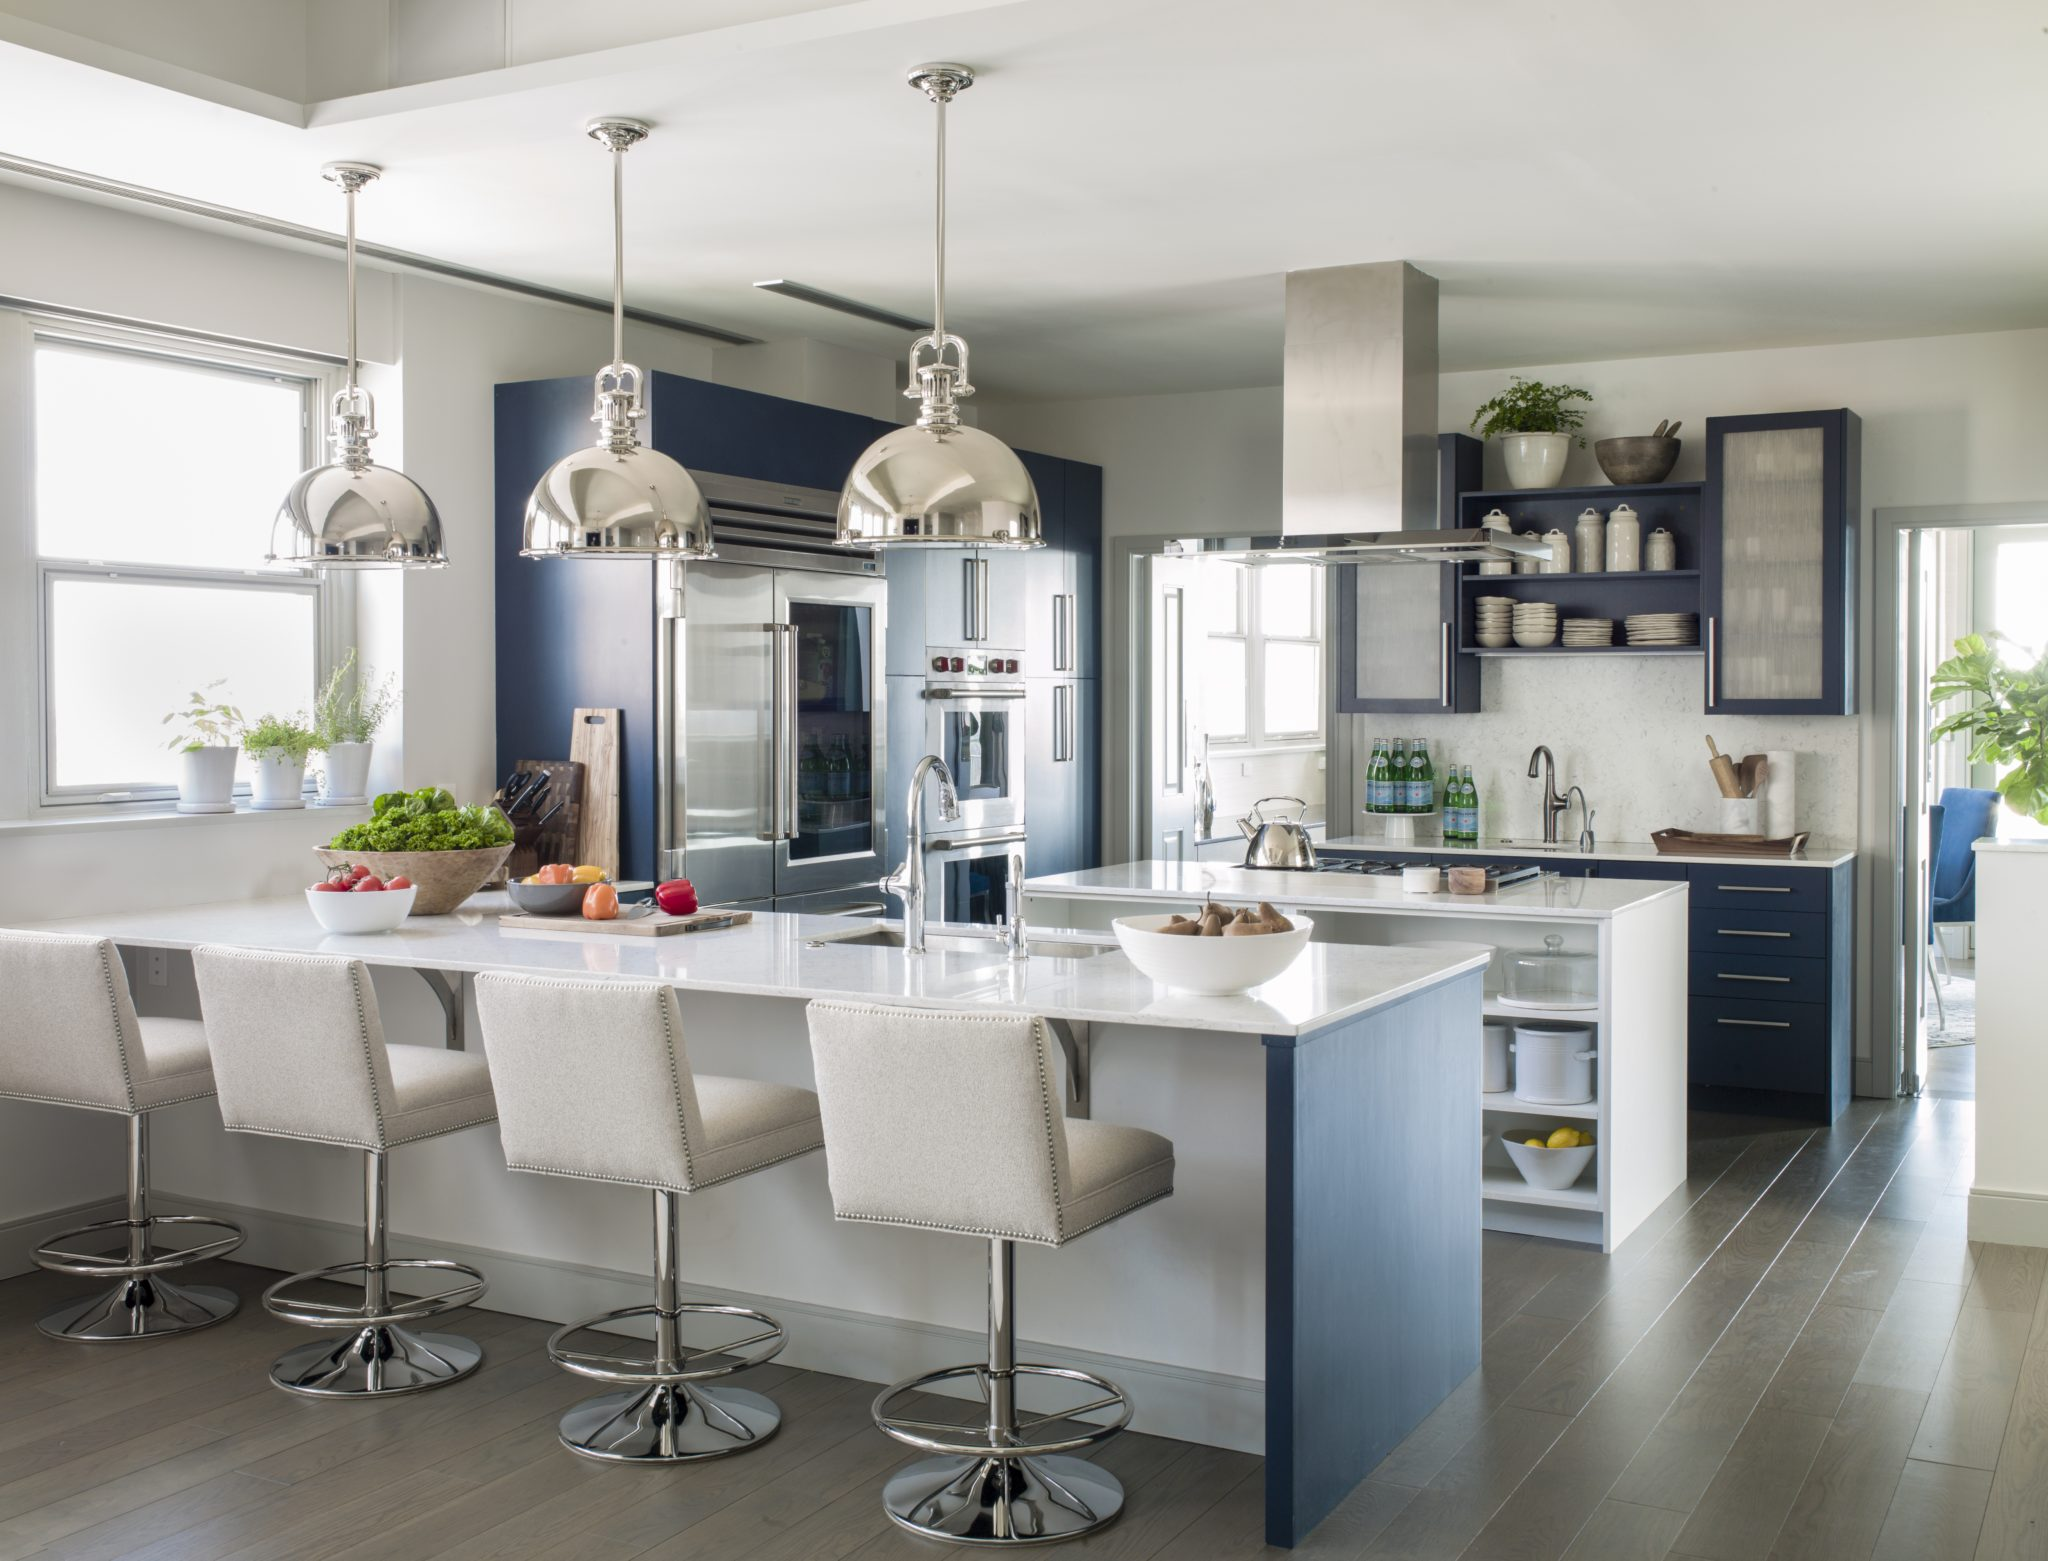 Chesapeake Residence, Kitchen with Pendant Lighting and Swivel Barstools by Laura Hodges Studio